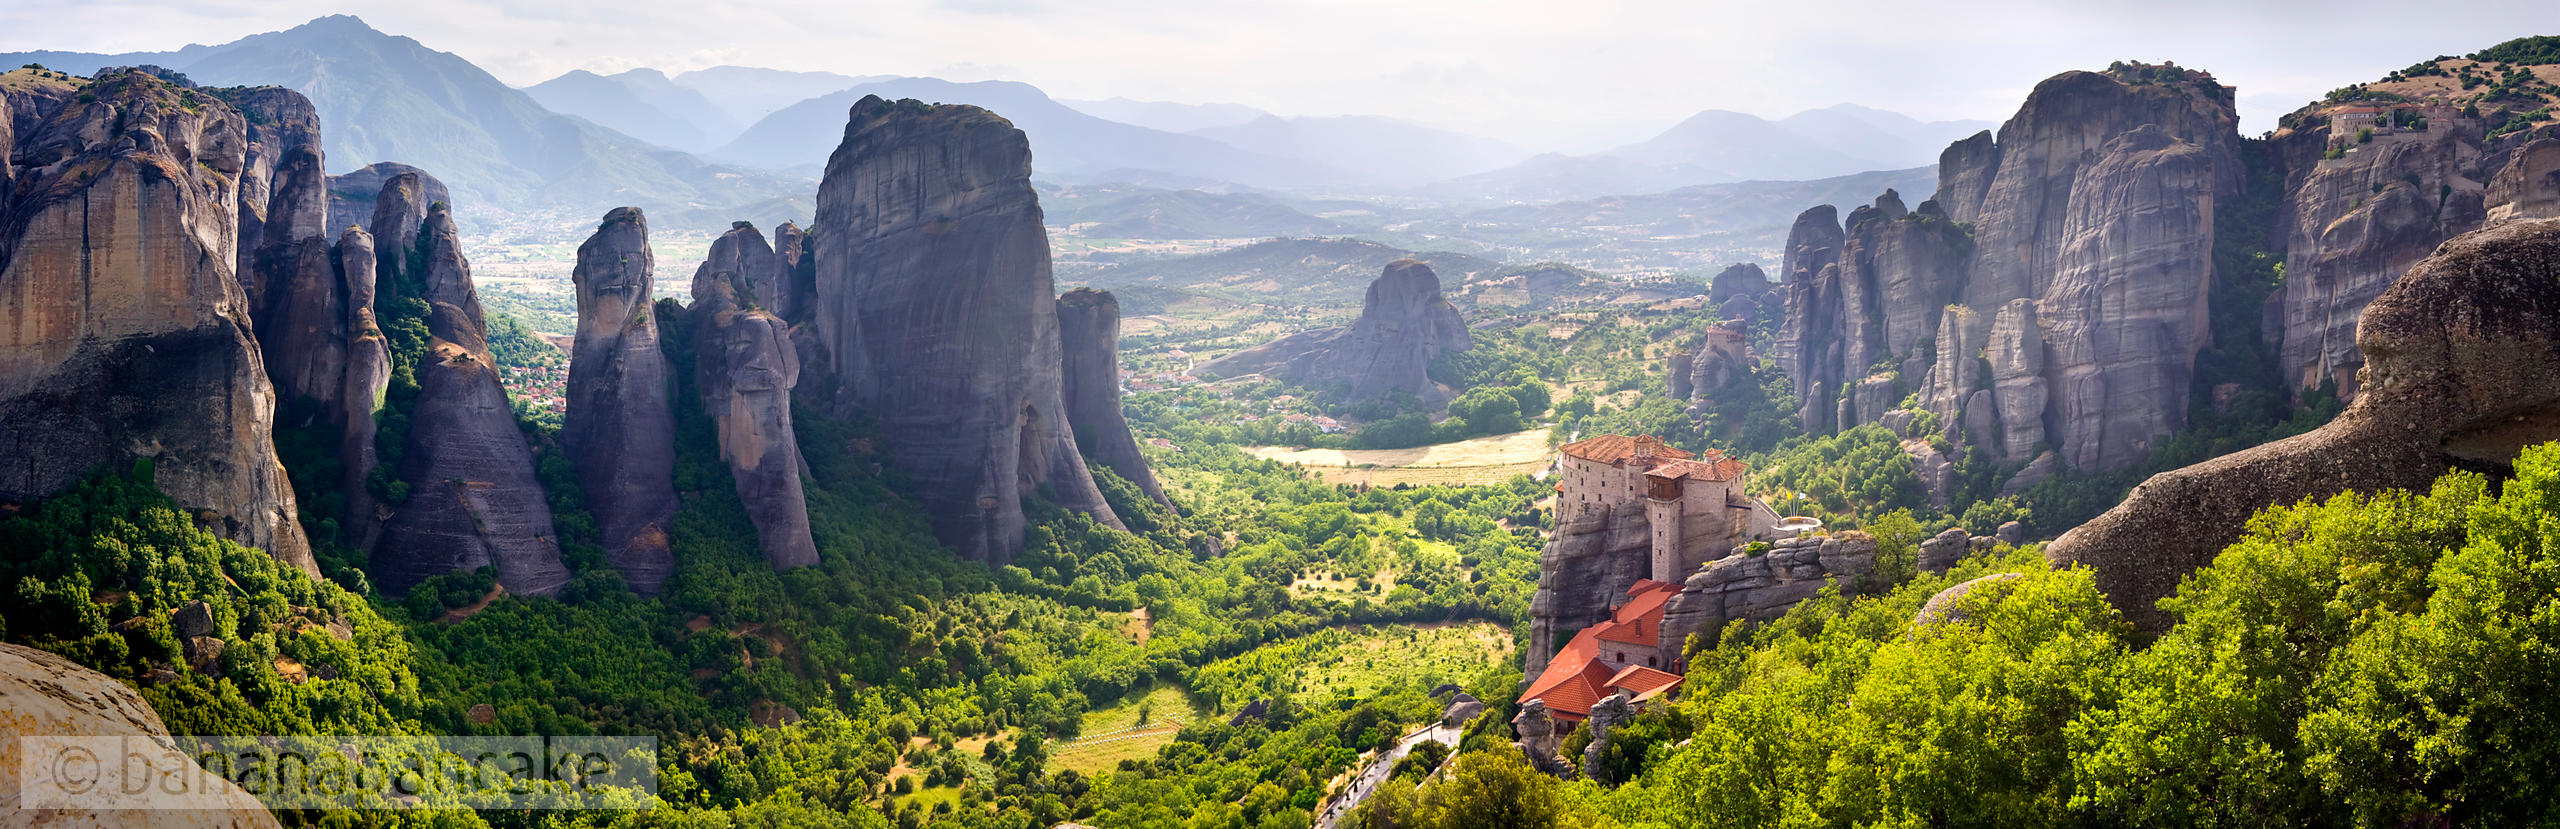 BP1061 - Panoramic view of Meteora, Greece